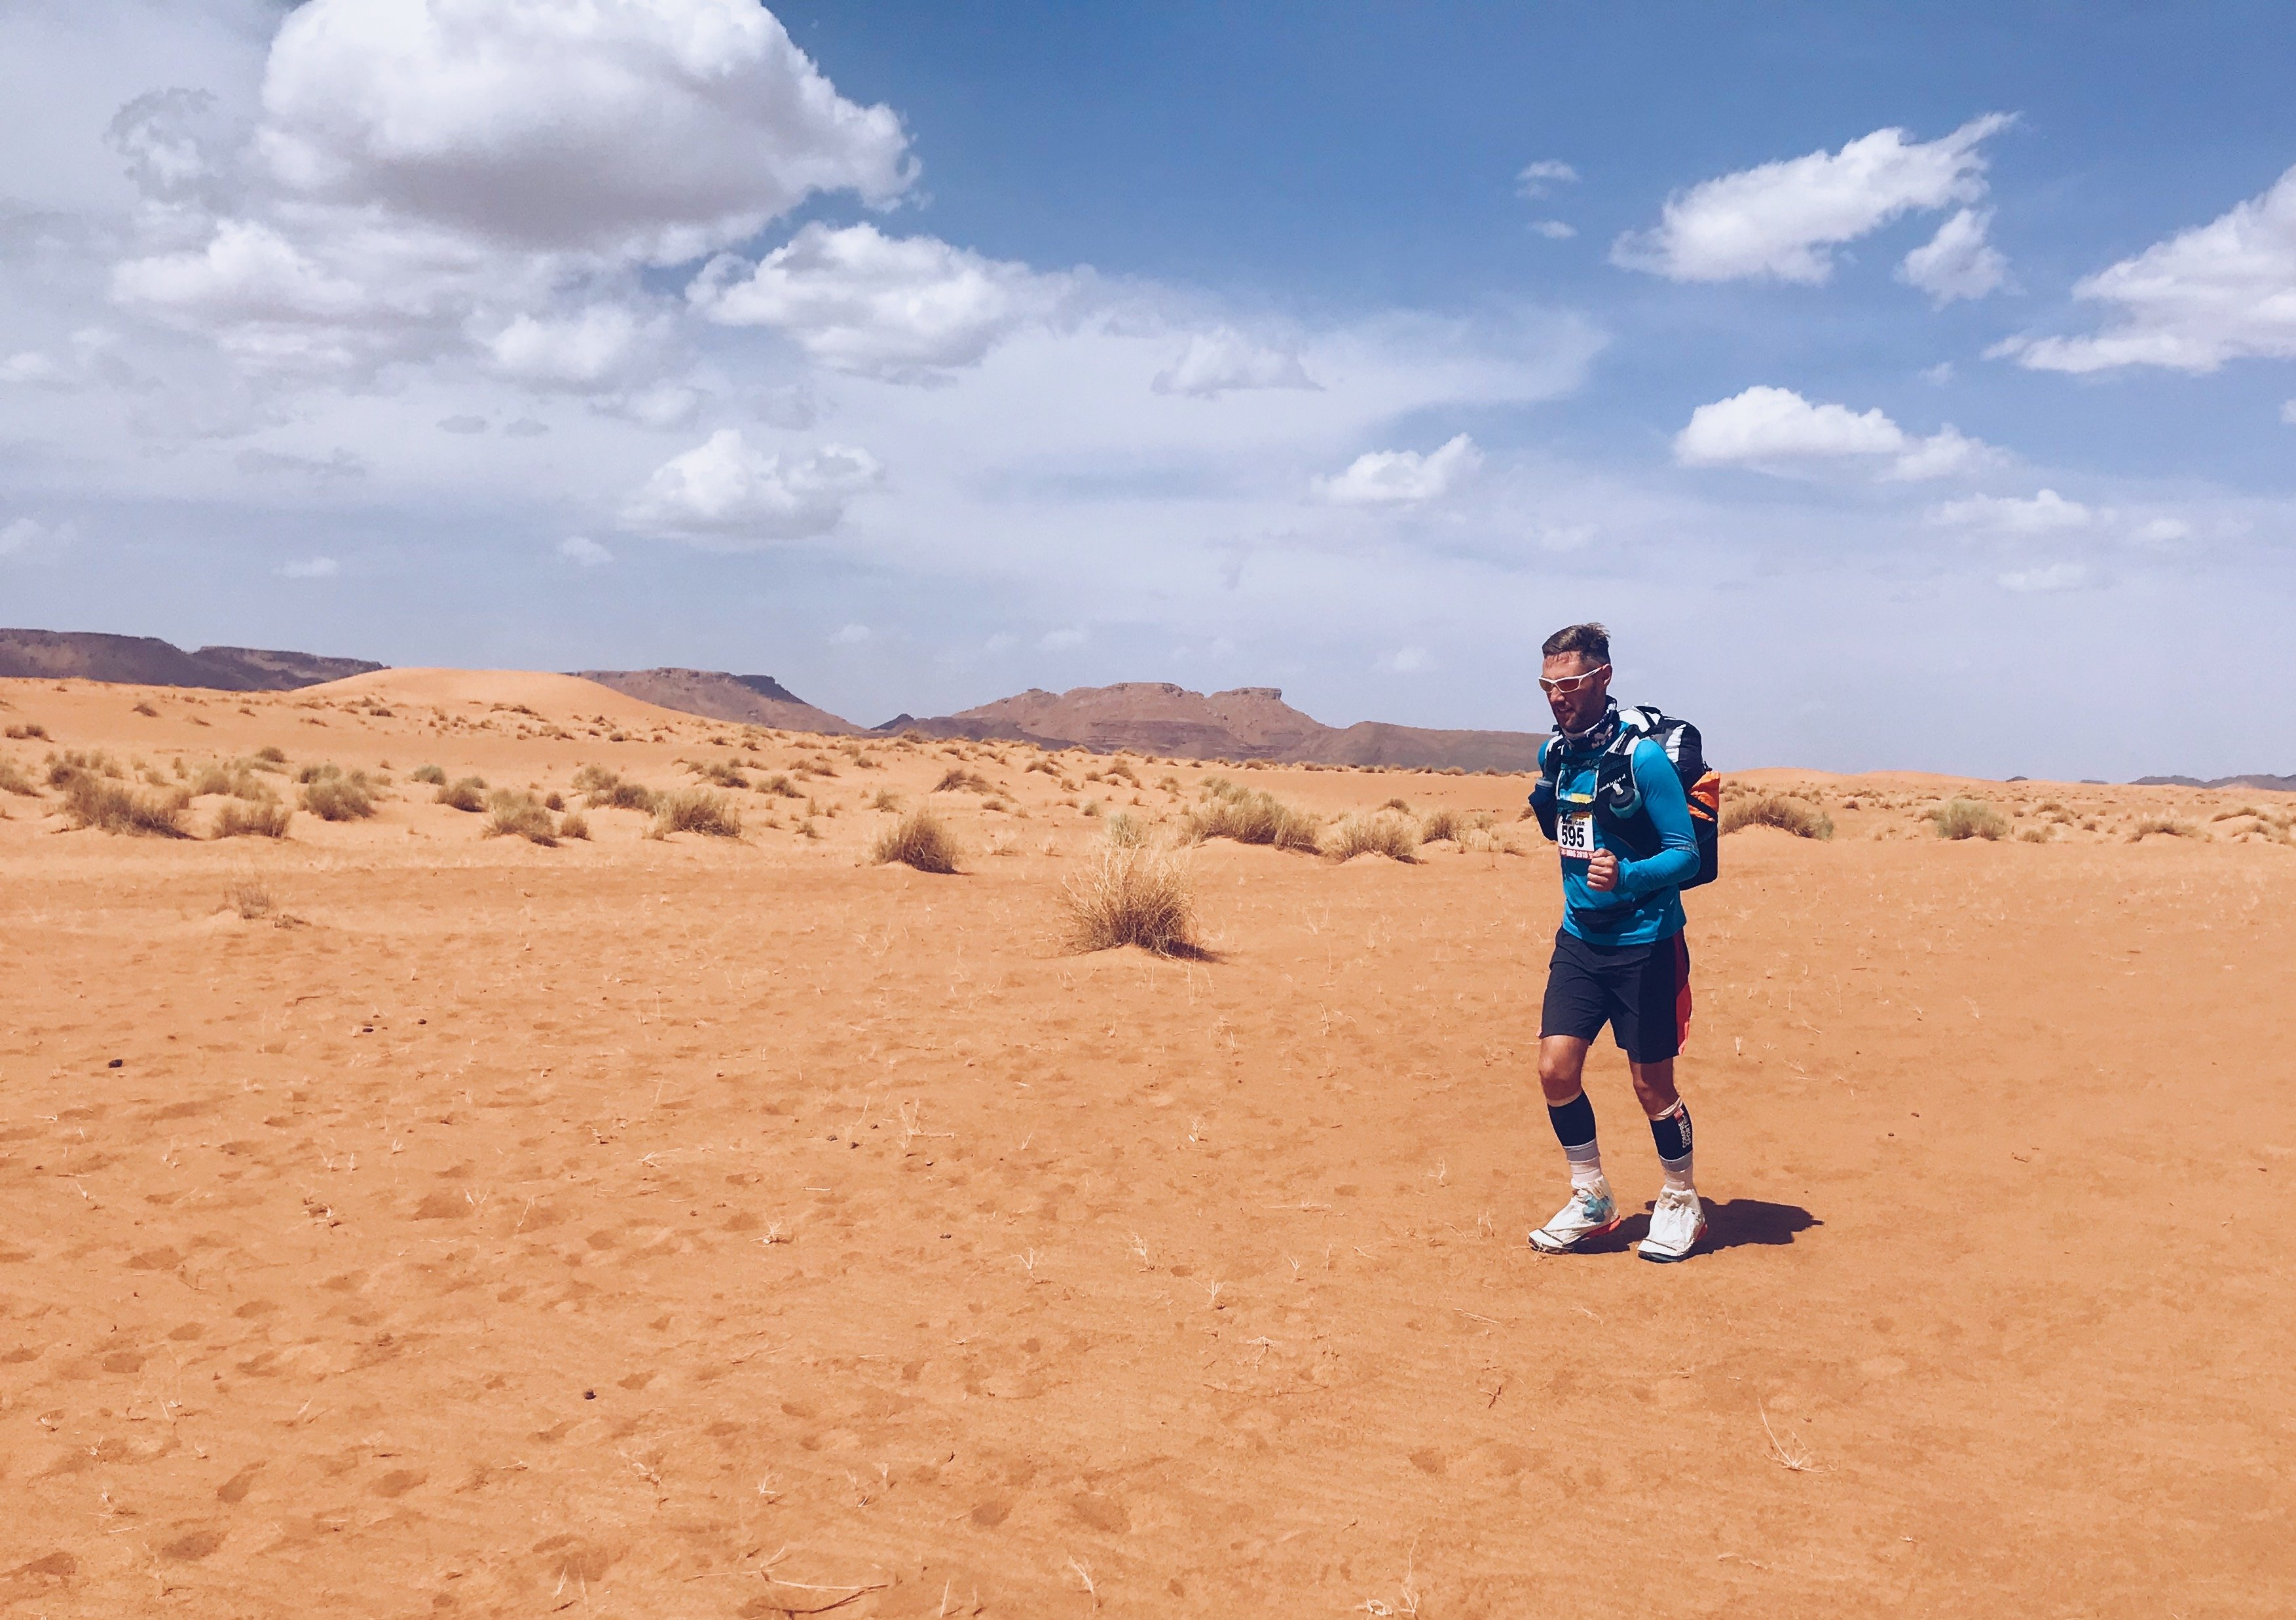 Running the Marathon Des Sables